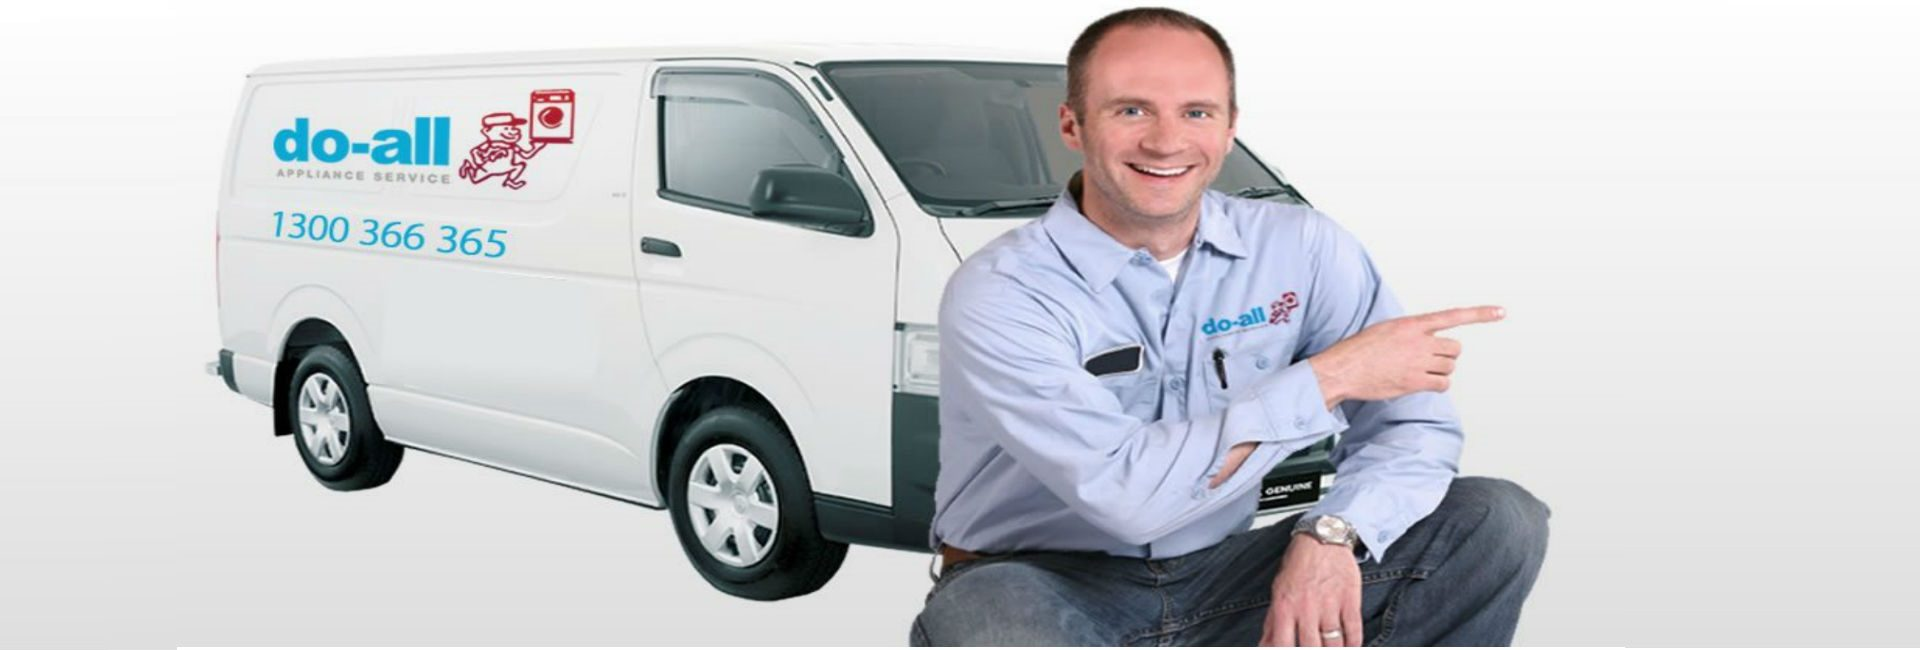 Melbourne's leading appliance servicing and repair people